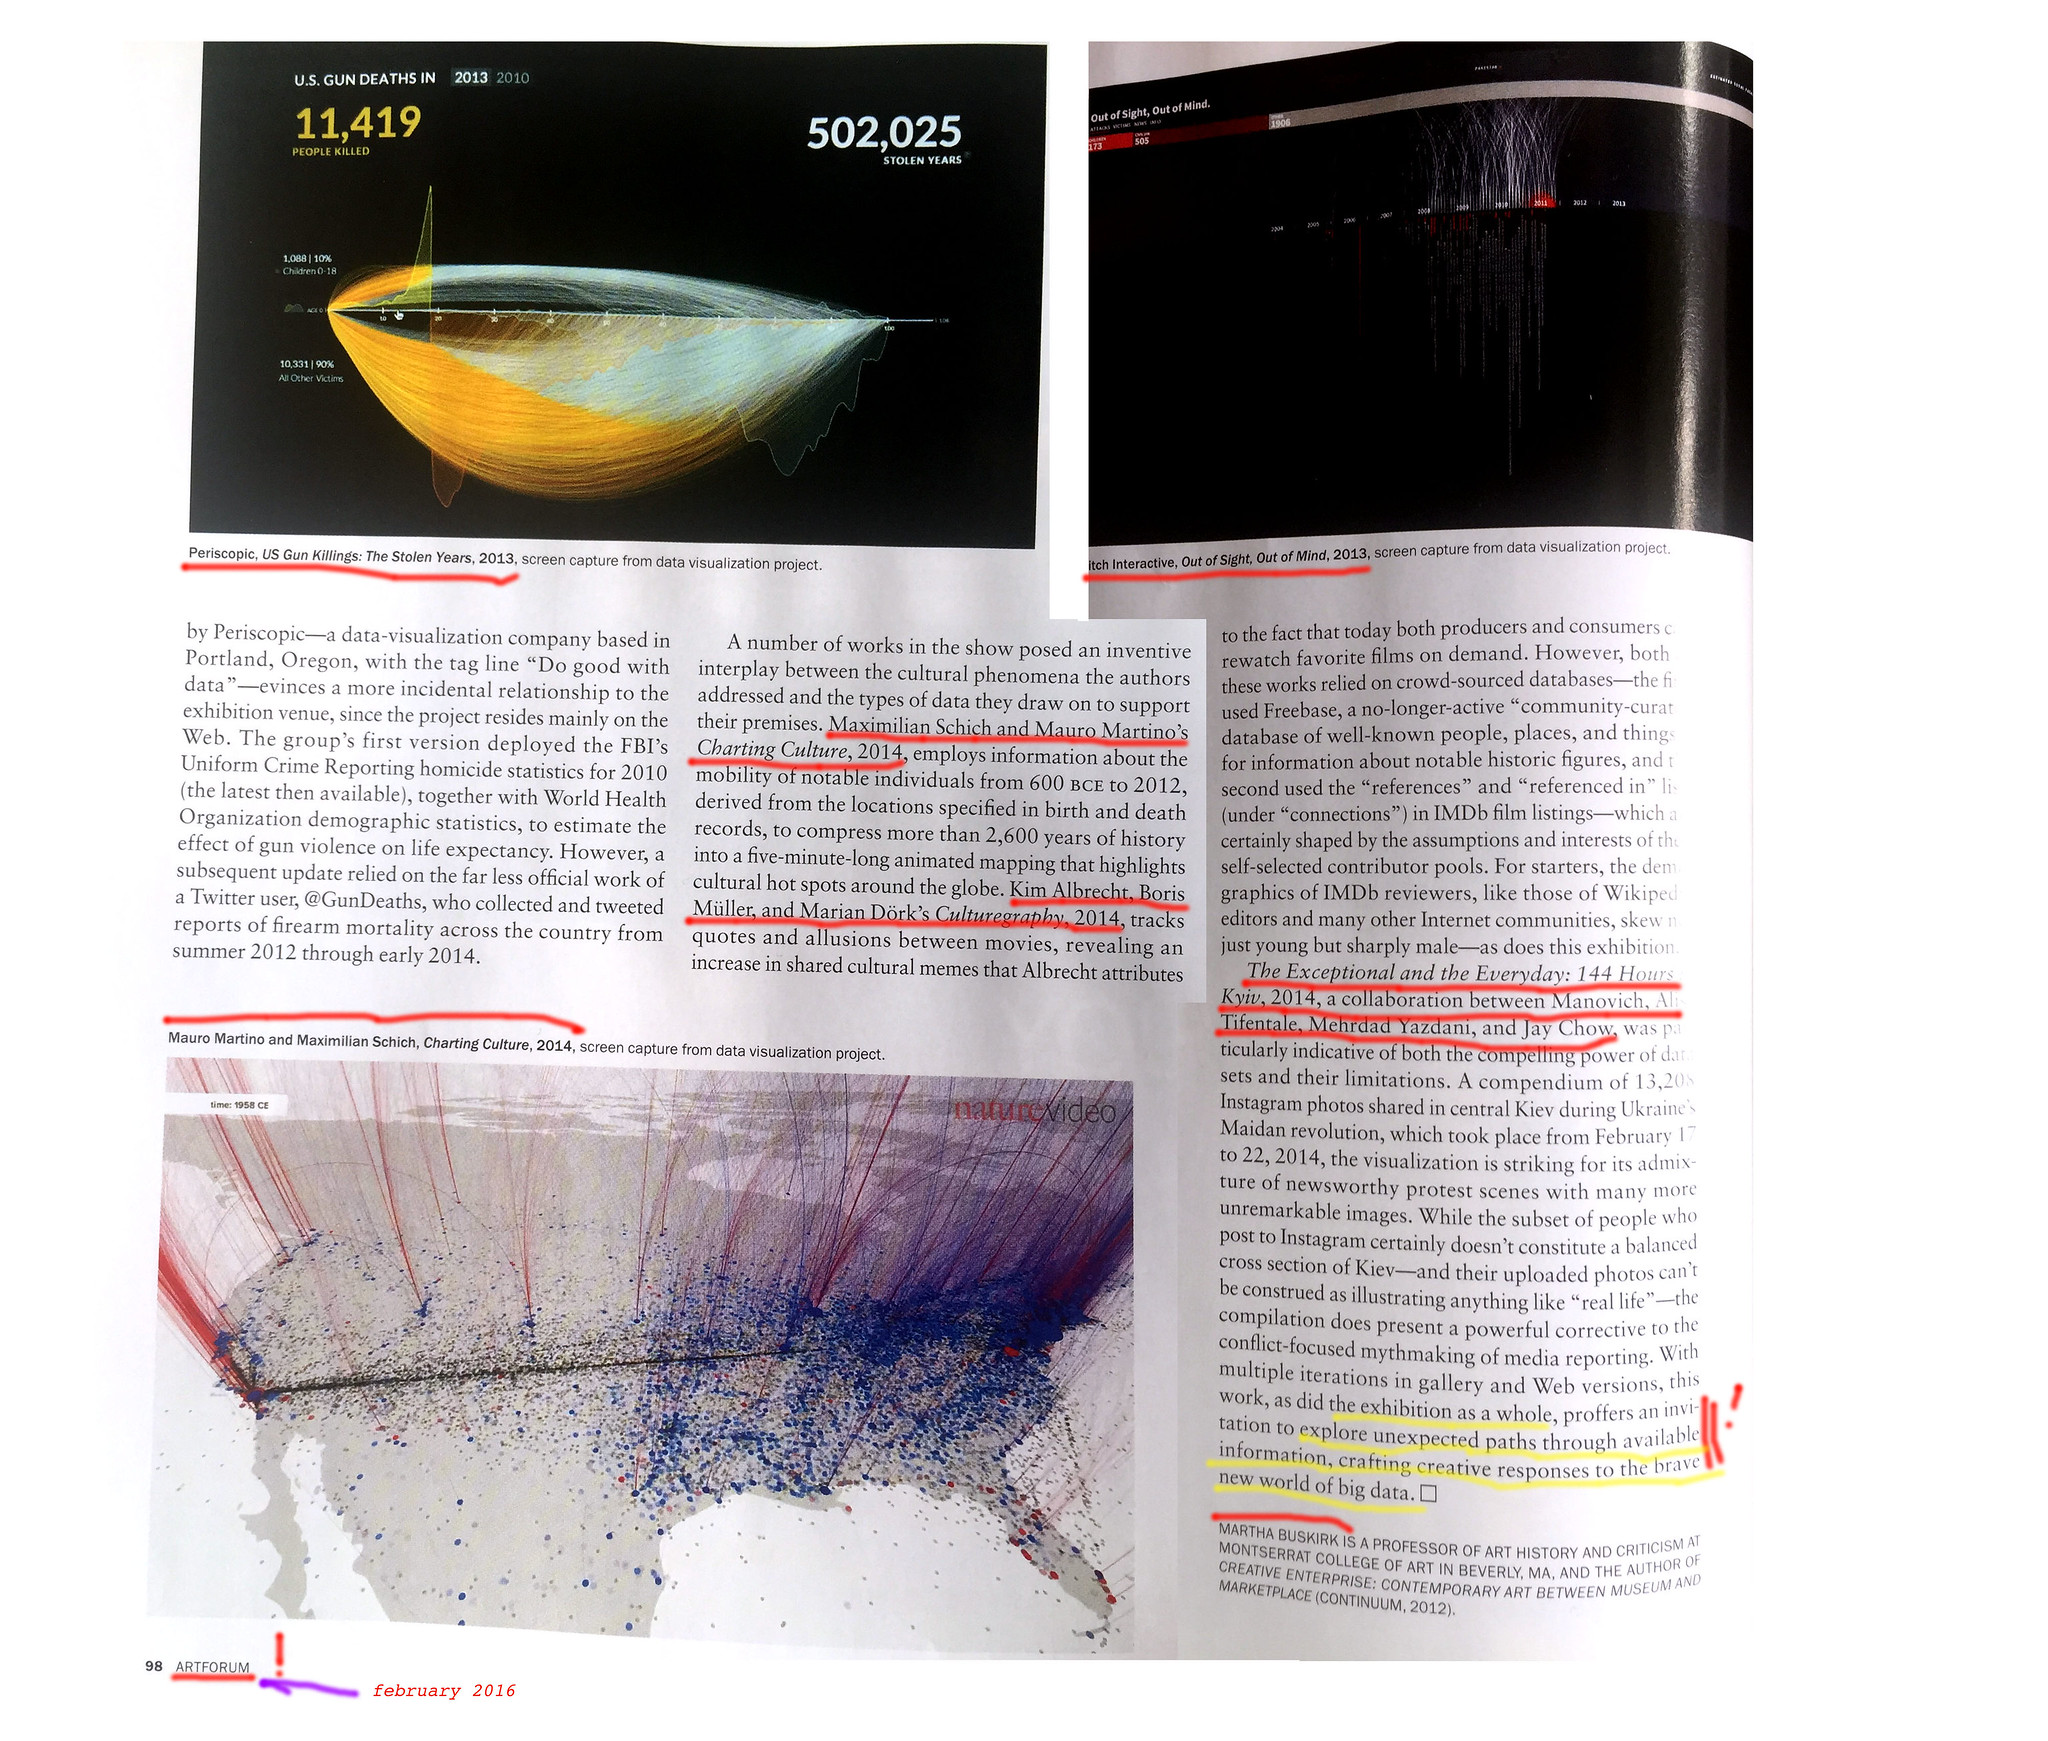 All sizes   article about Data Drift in Artforum p2   Flickr - Photo